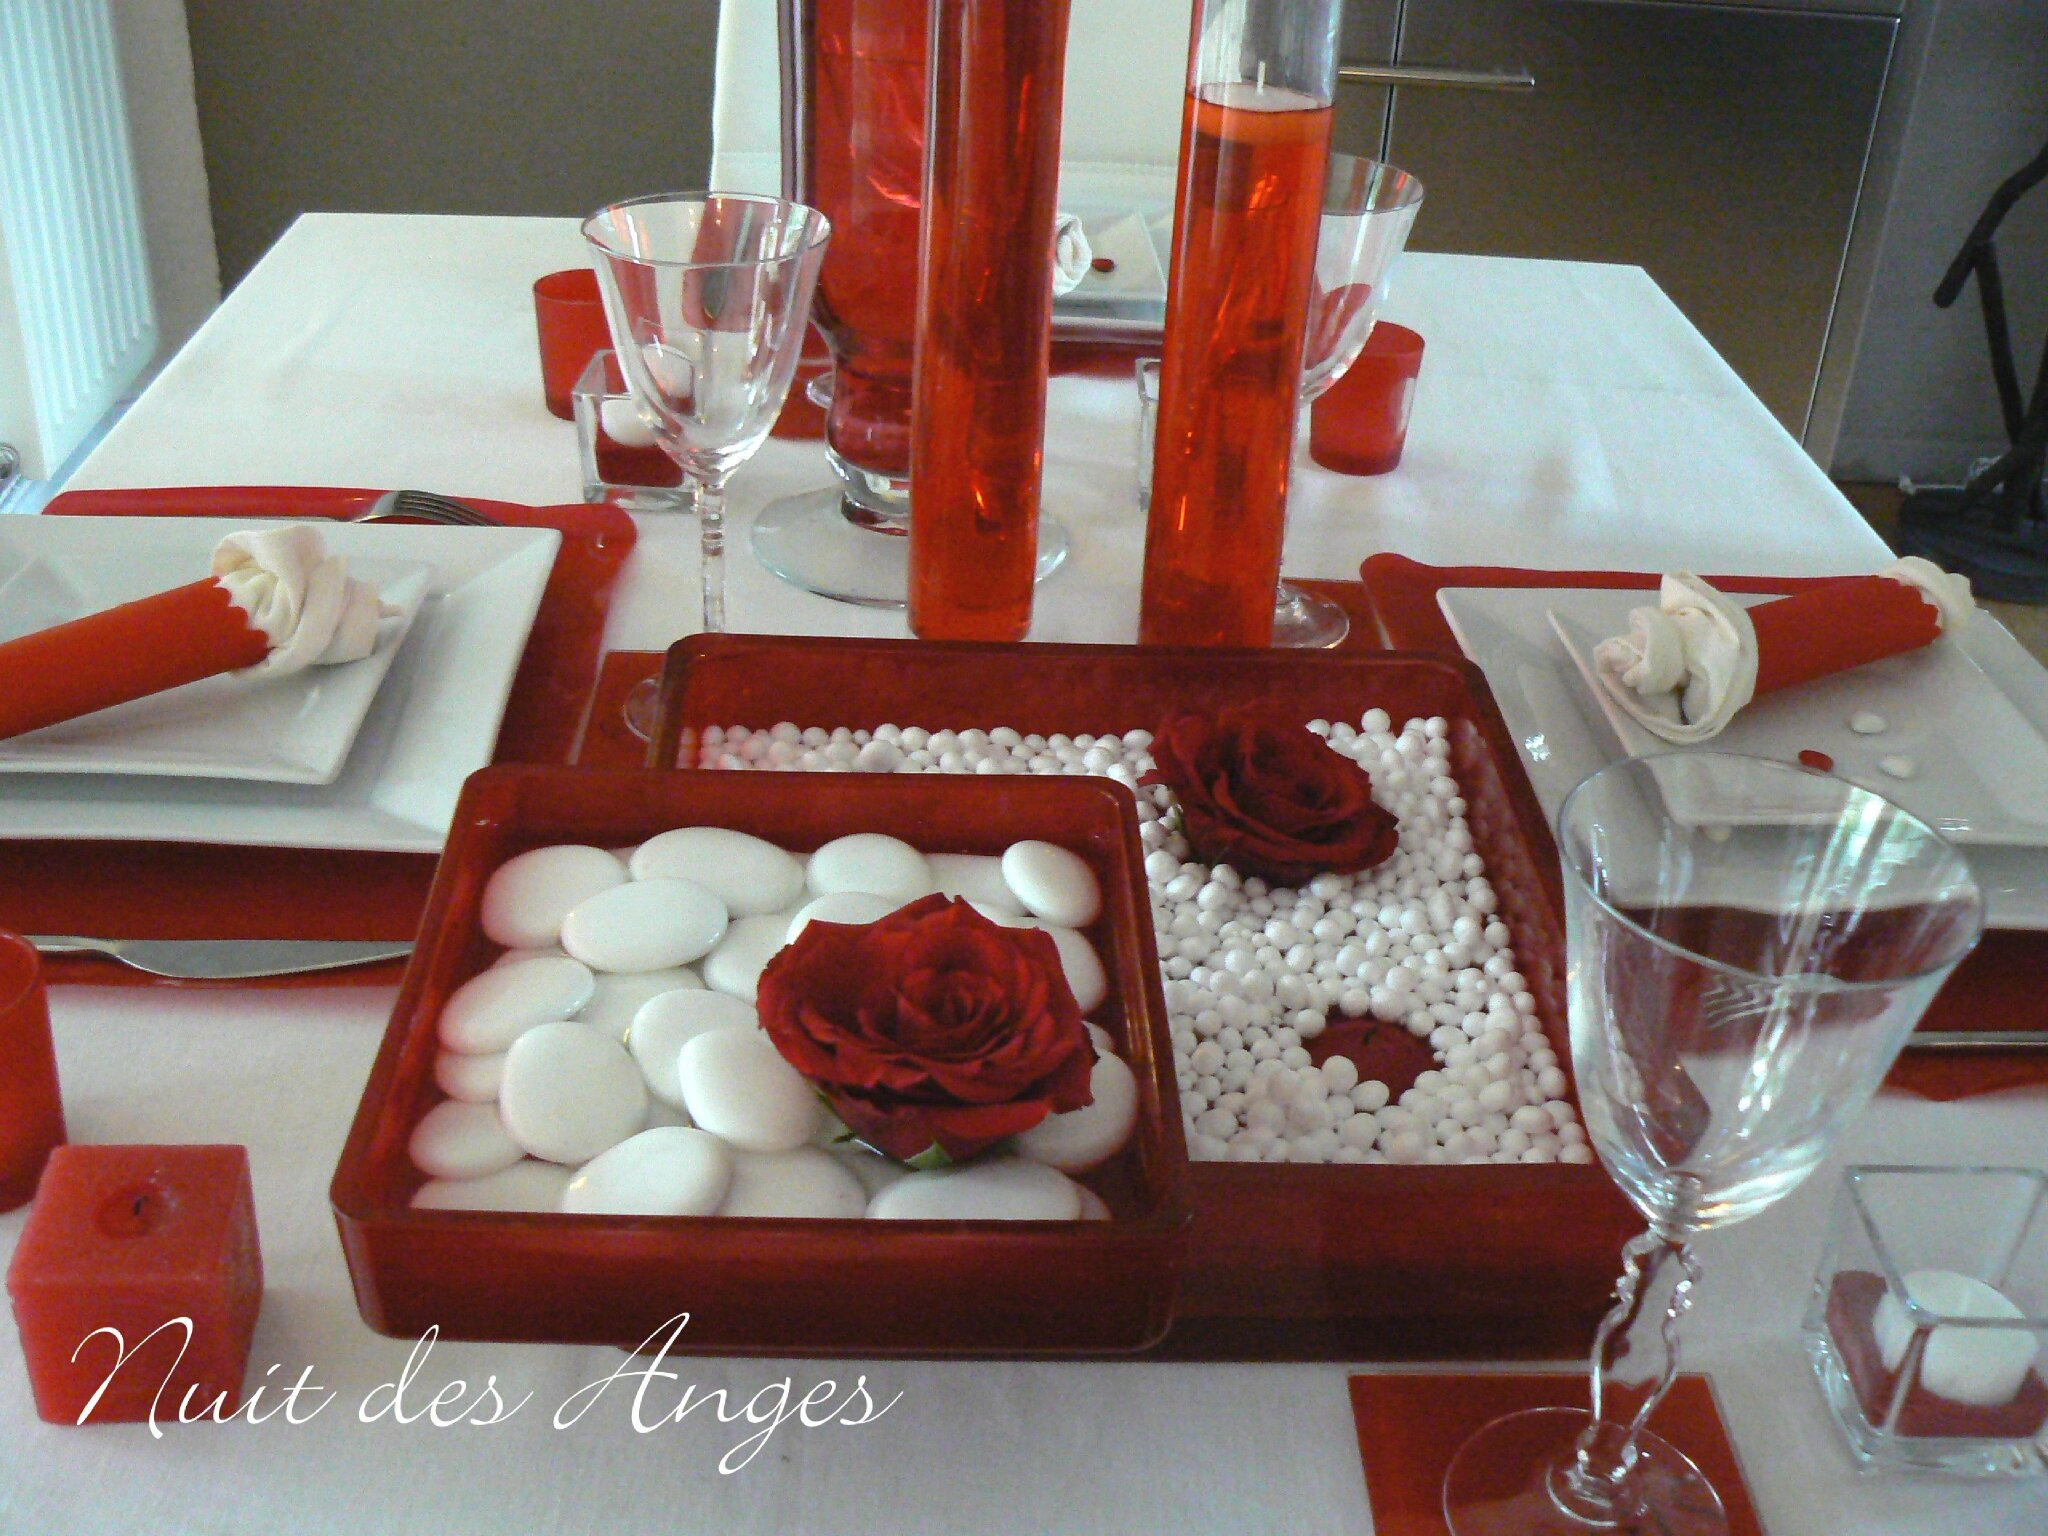 d coration de table rouge et blanche nuit des anges. Black Bedroom Furniture Sets. Home Design Ideas